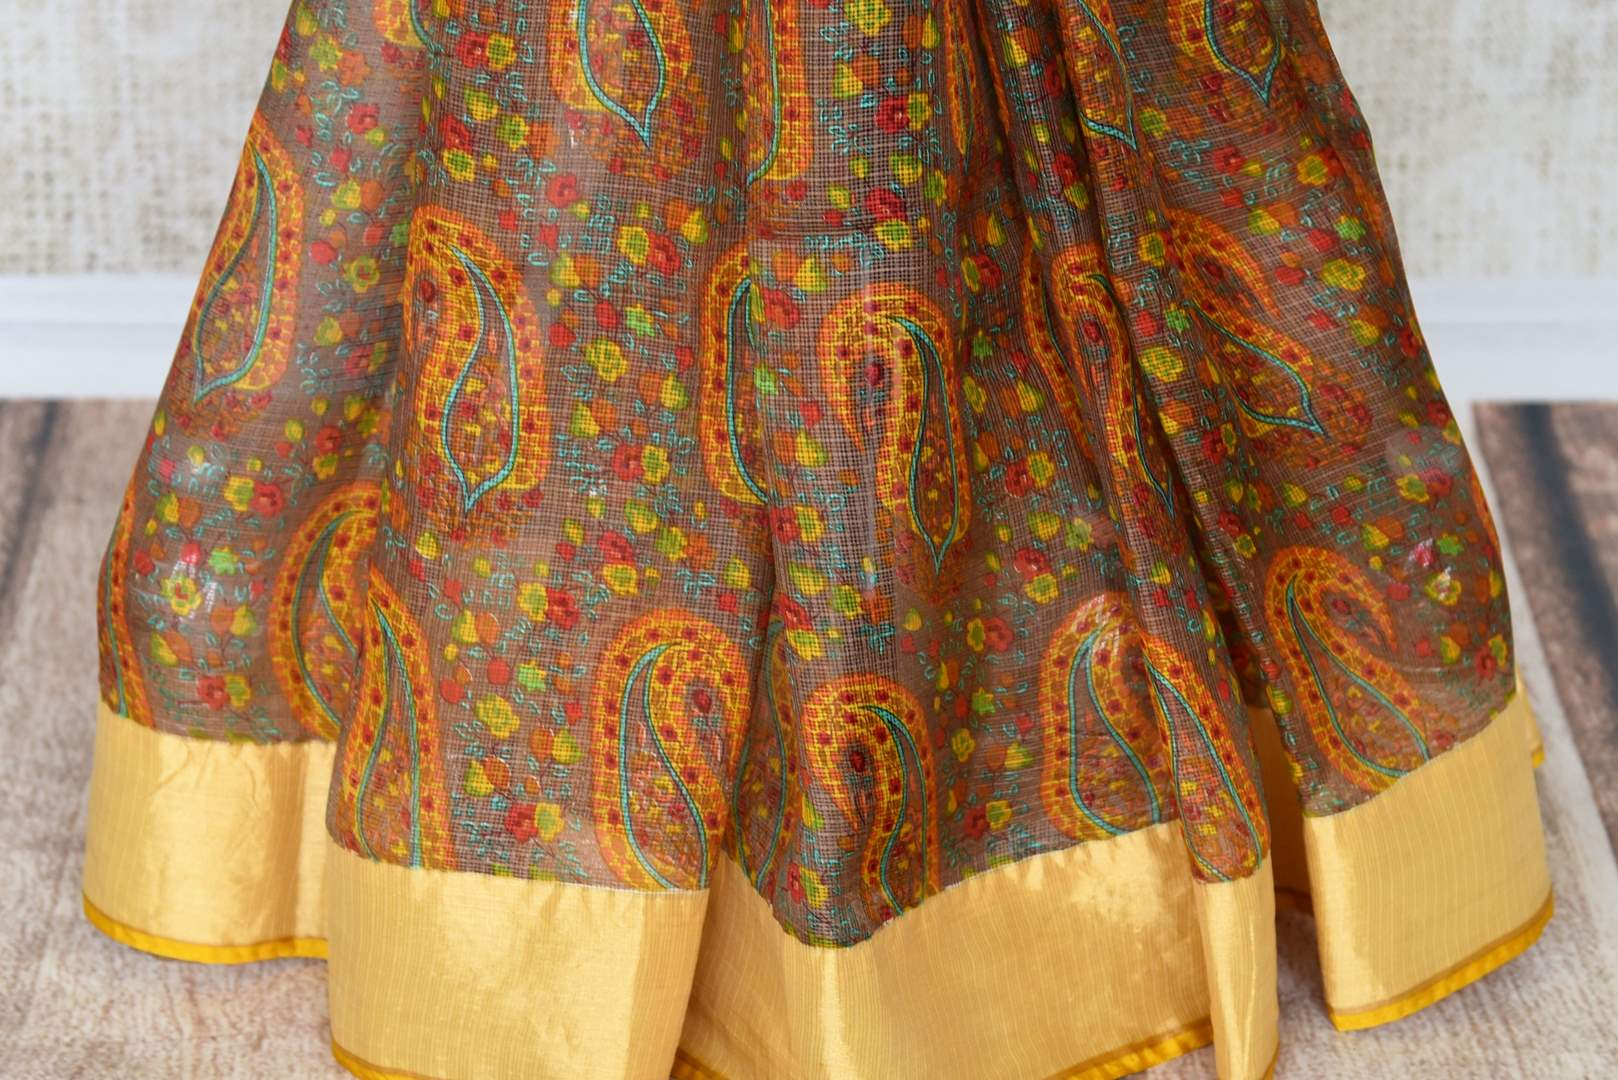 Invest in handcrafted authentic zari kota silk traditional sari this season to look your best. This yellow colored traditional saree with handprinted motifs and zari border is every woman's must-have. Shop designer silk sarees, kanjeevaram silk sarees, handloom saris online or visit Pure Elegance store in USA.-pleats